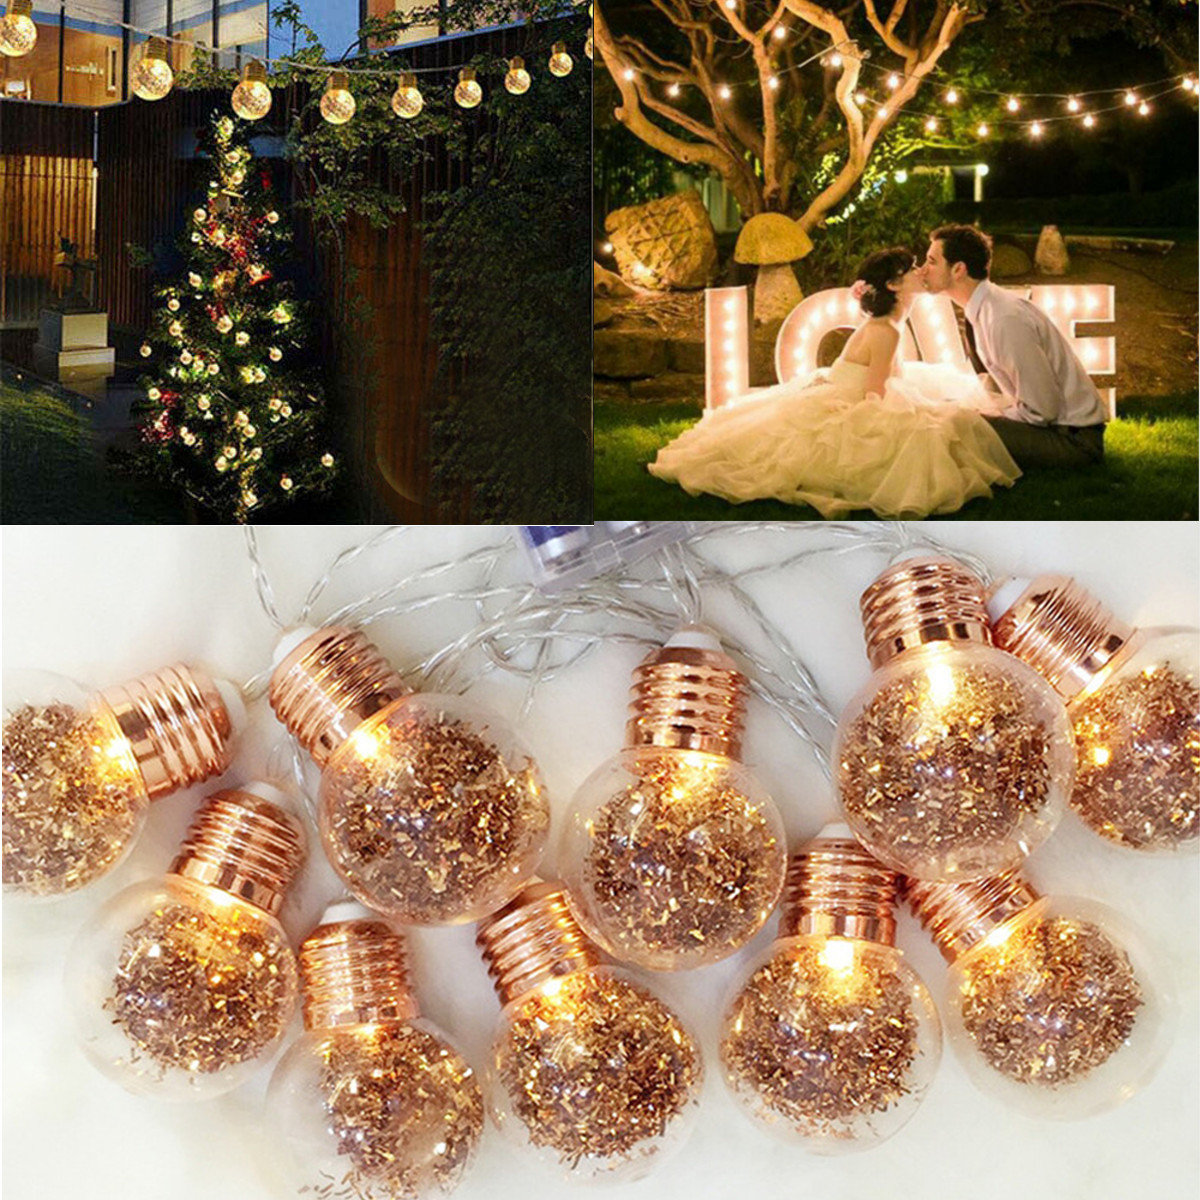 10 LED Bulbs String Lights Fairy Lamp Patio Party Yard Garden Wedding Home Decorative Night Light